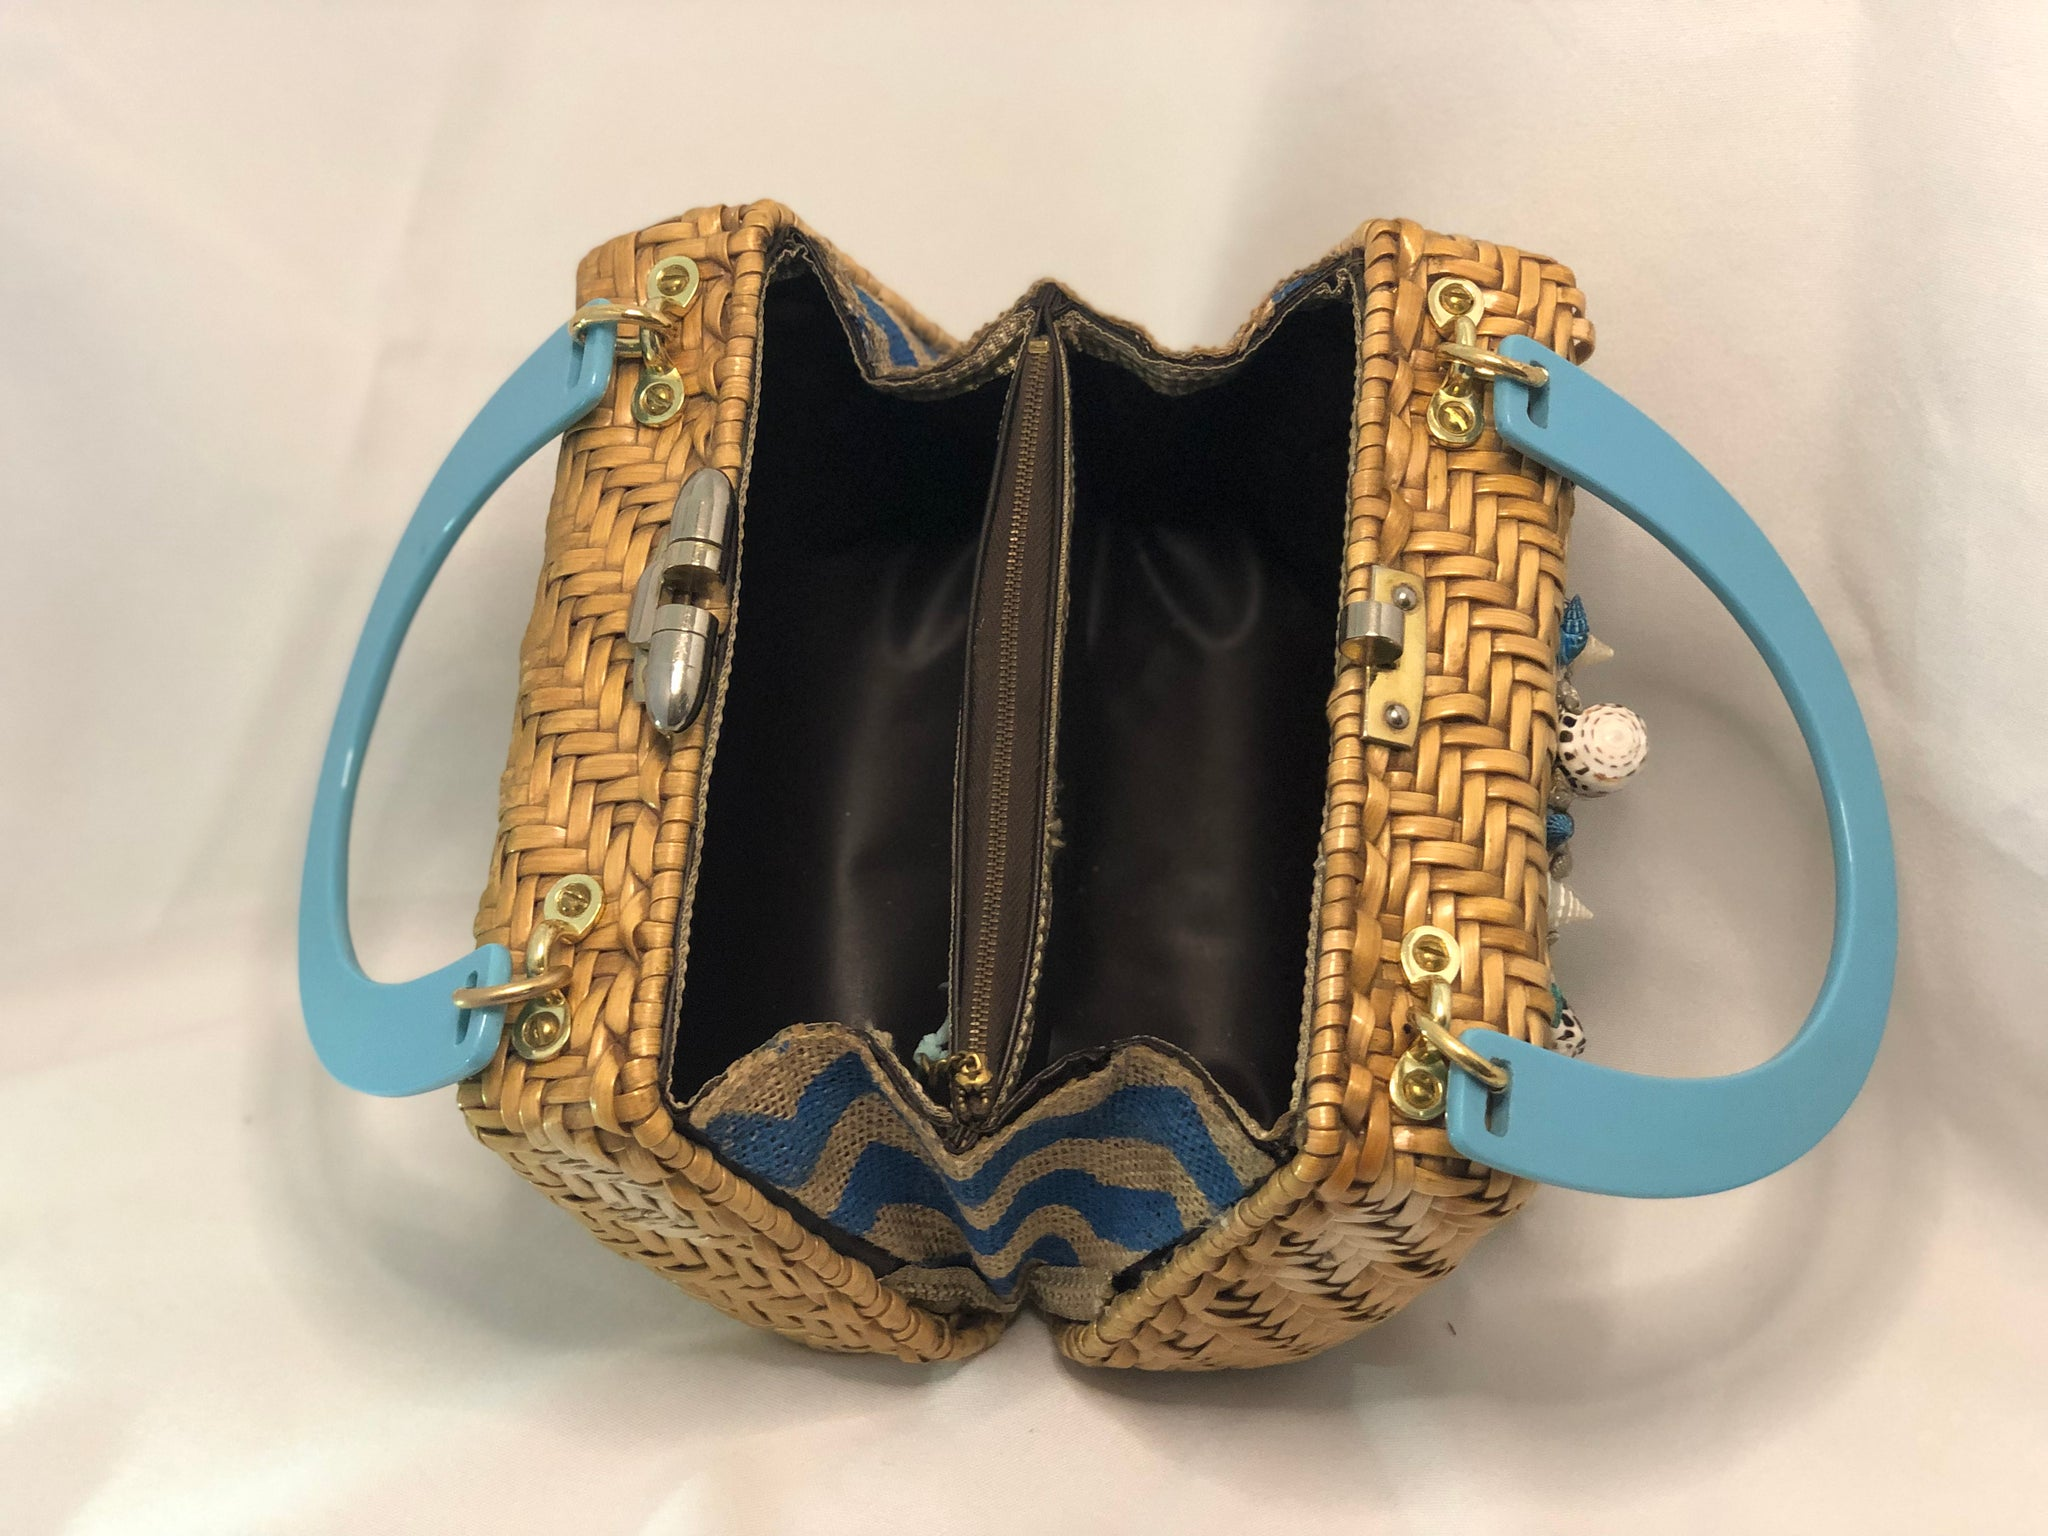 "1960's Lewis Vintage Tan Natural Straw Purse, White Sand Dollar With Multi-Colored Shell Motif On Front. White Starfishes on Back. Blue/Tan Side Lining, Two Compartments With Tan French Trim. Golden Brass Hardware, Teal-Blue Lucite Handles. Dimensions - Height 7""; Length 8.5""; Depth 5""; Handle 5"""